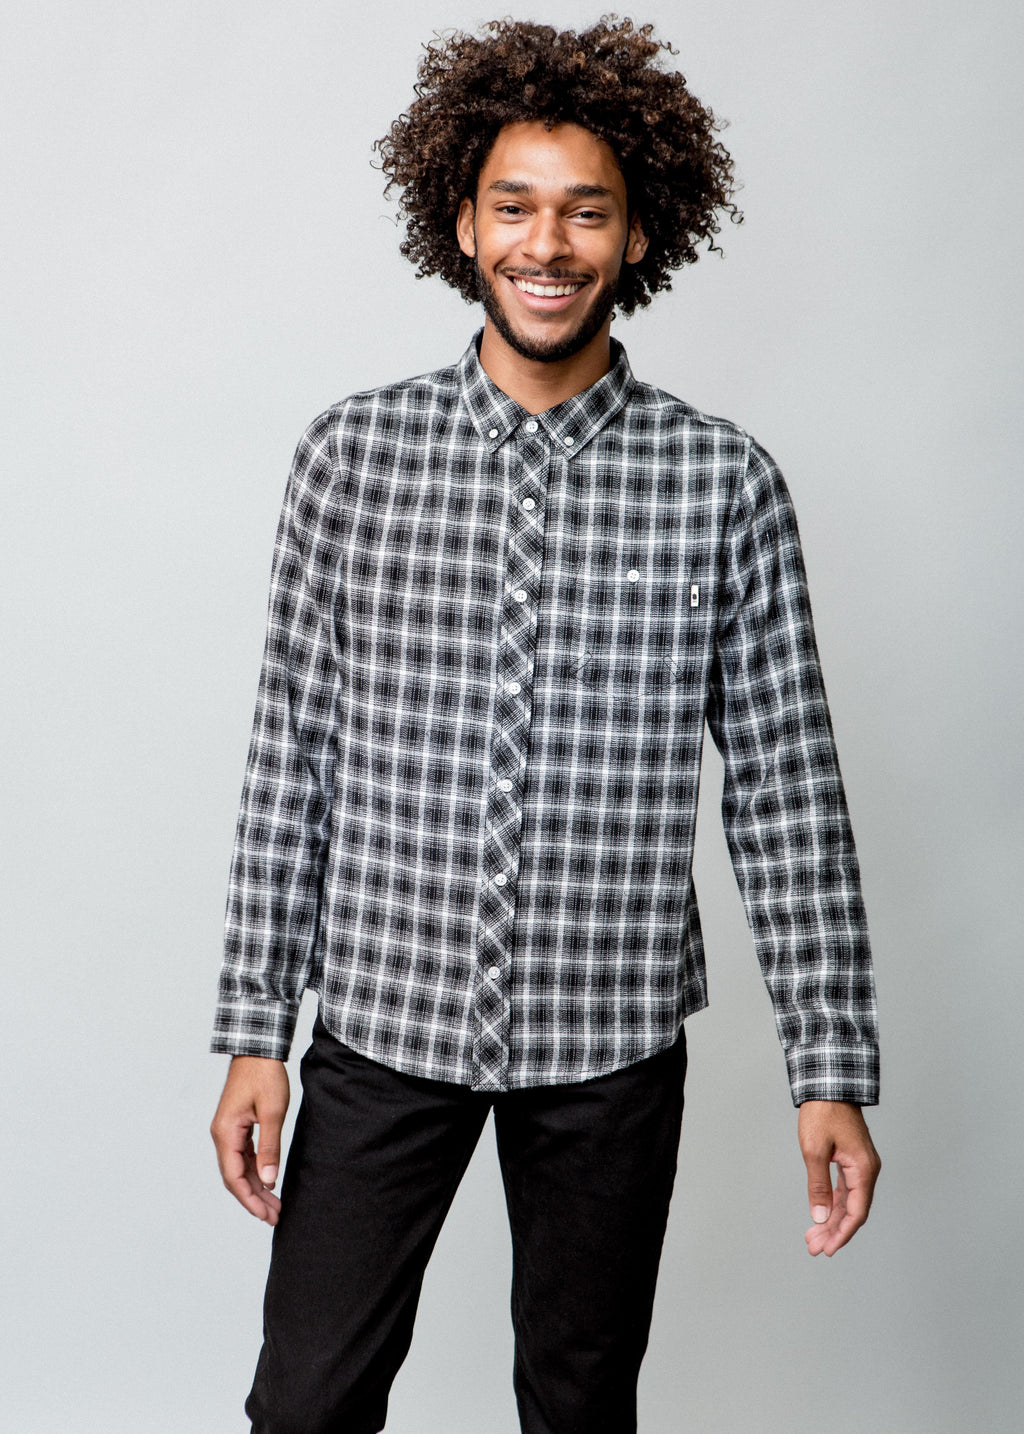 Image of a man wearing a button up black and white check shirt. Front view.